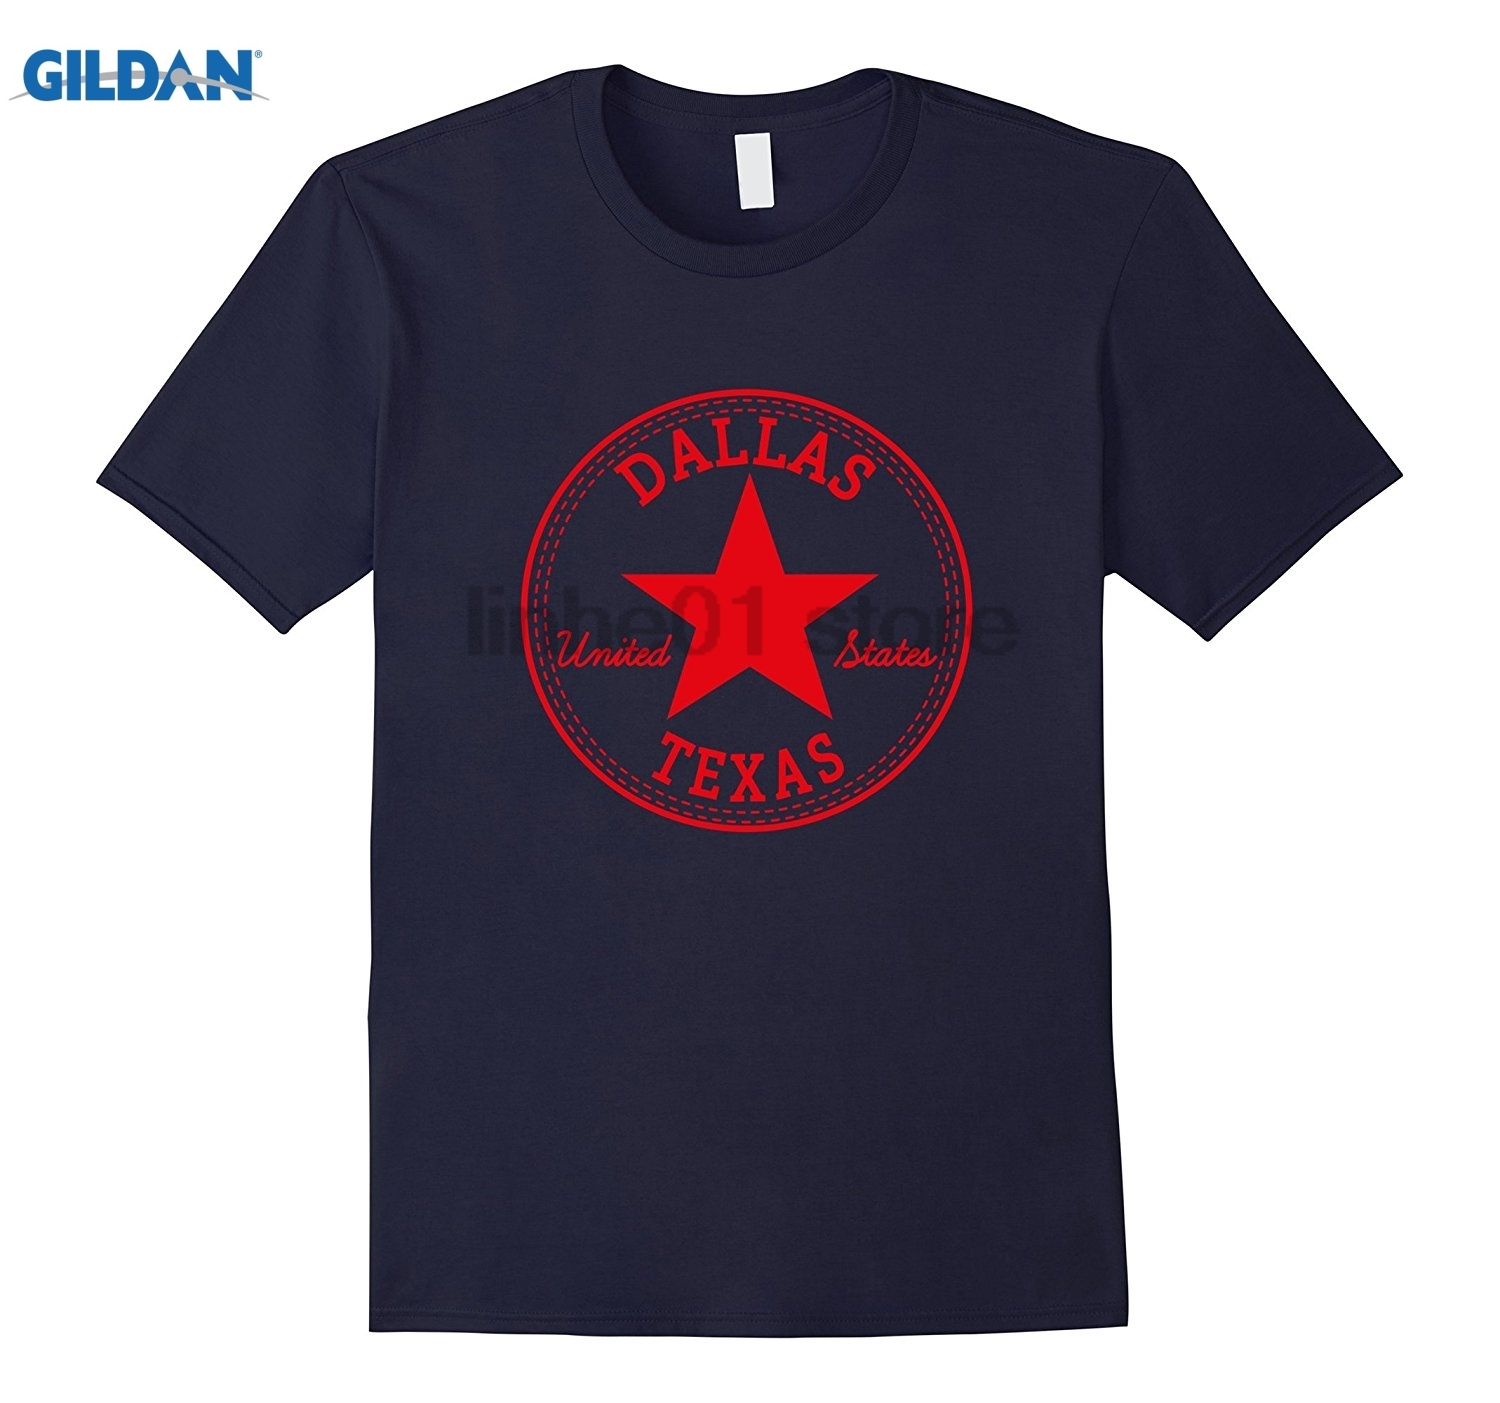 GILDAN Dallas - Texas - United States USA Relaxed Fit T-Shirt glasses Womens T-shirt ...